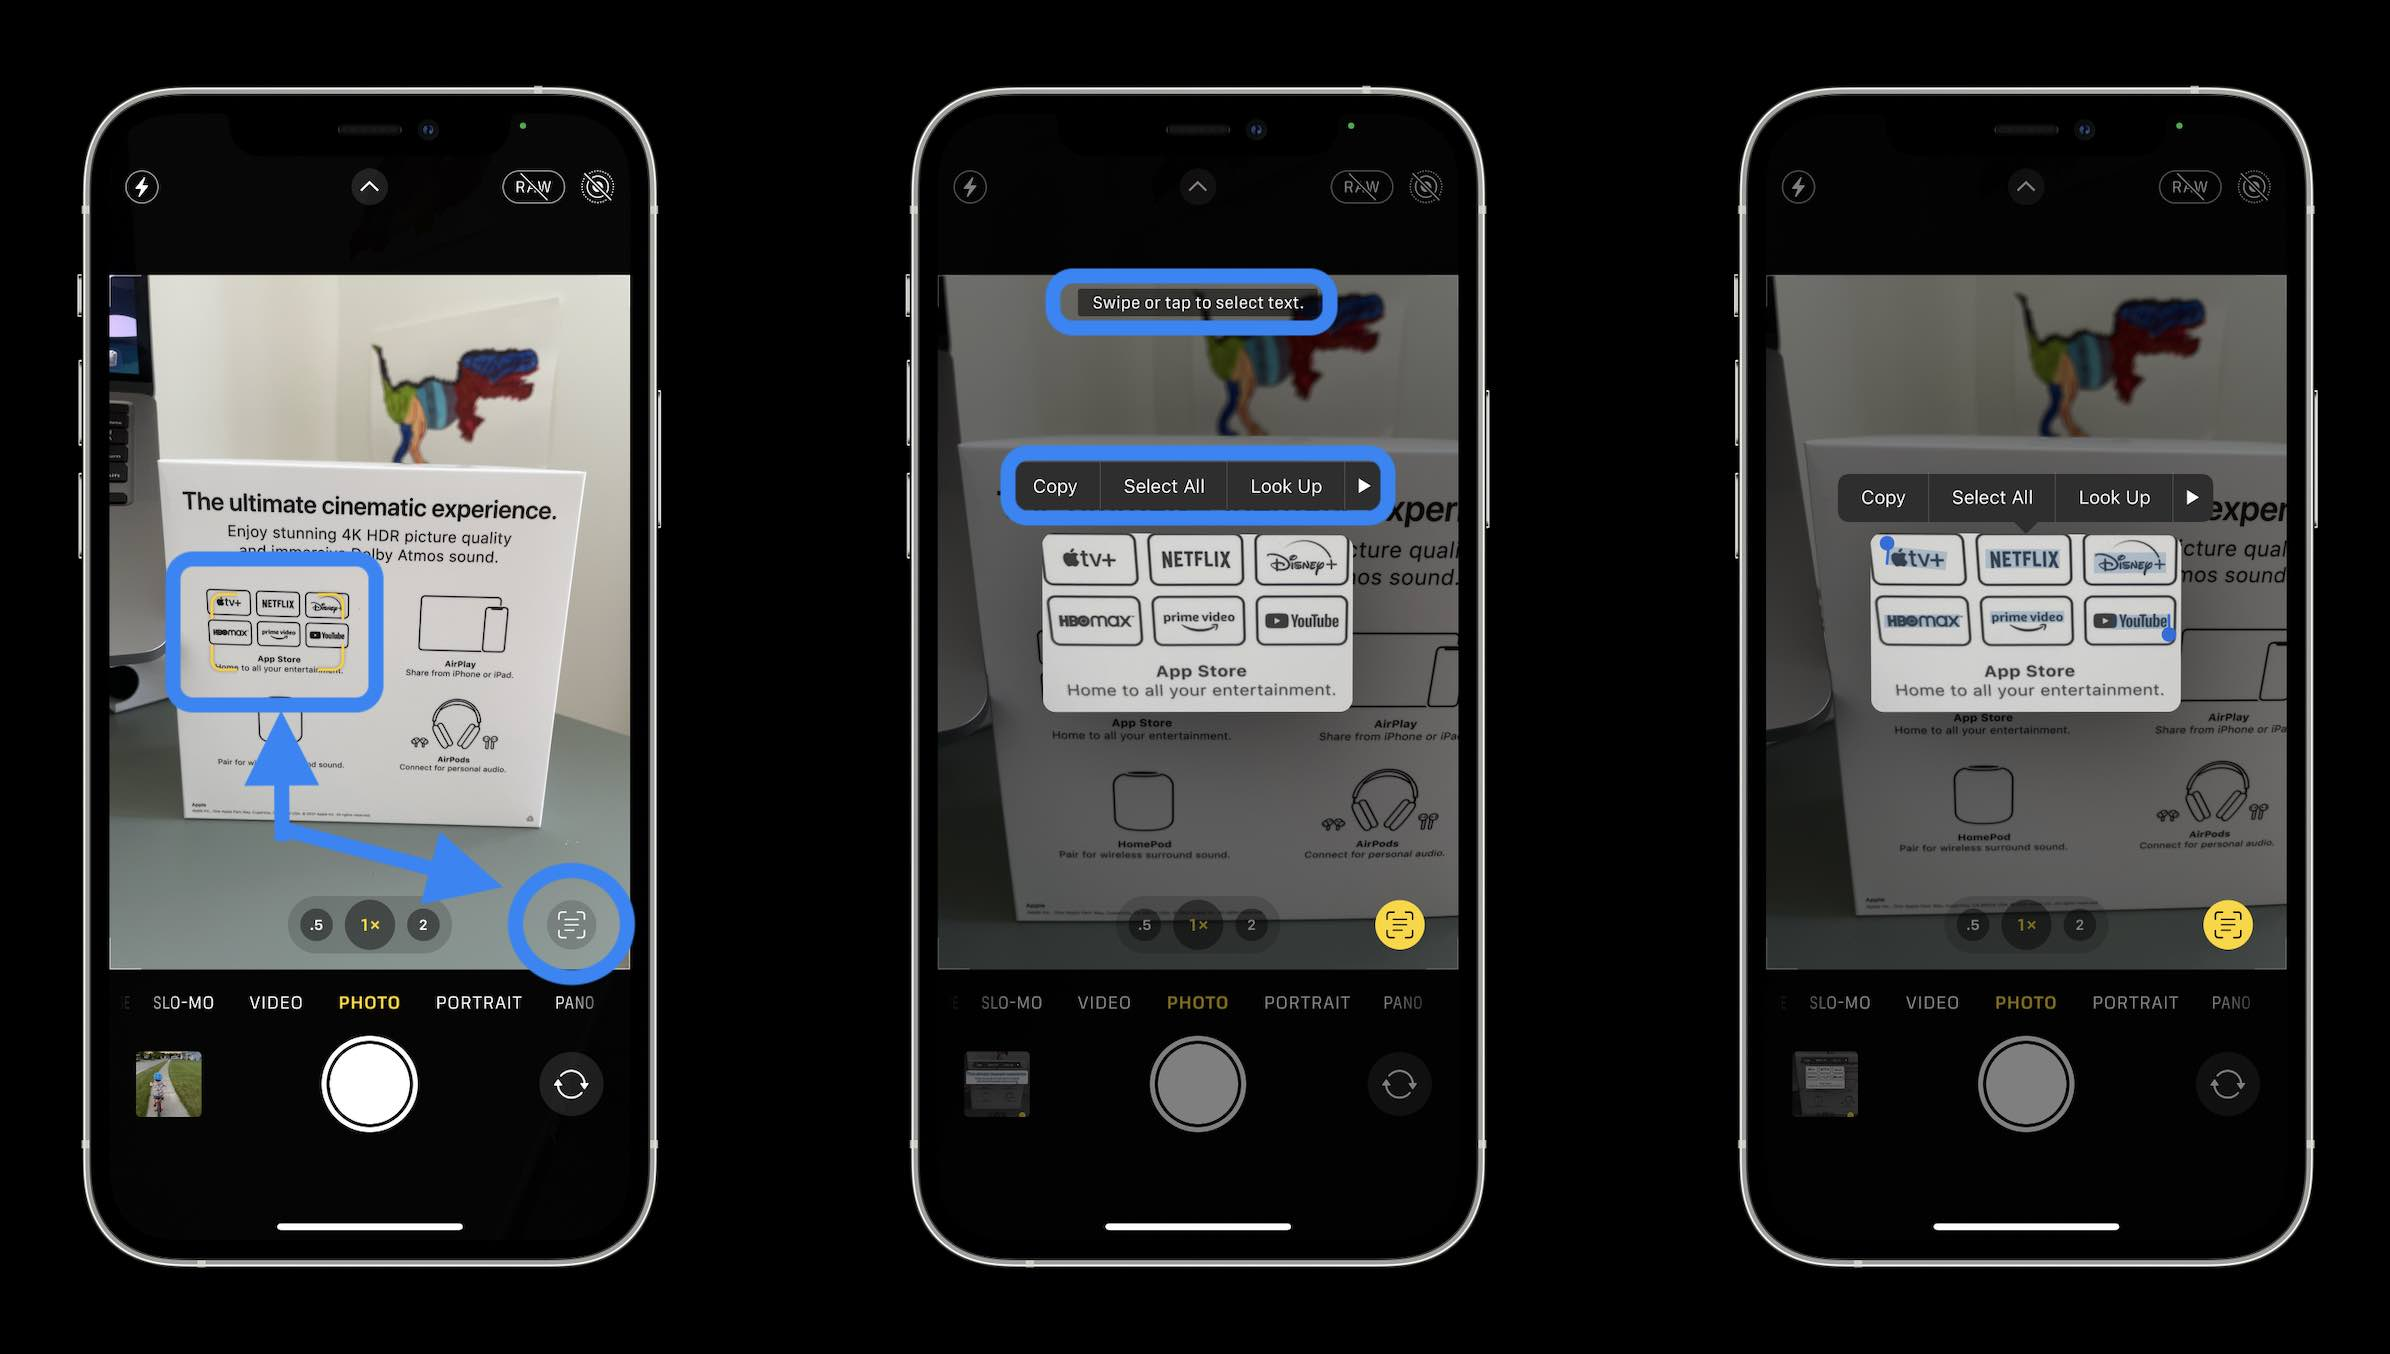 How to use iPhone Live Text OCR in iOS 15 - walkthrough